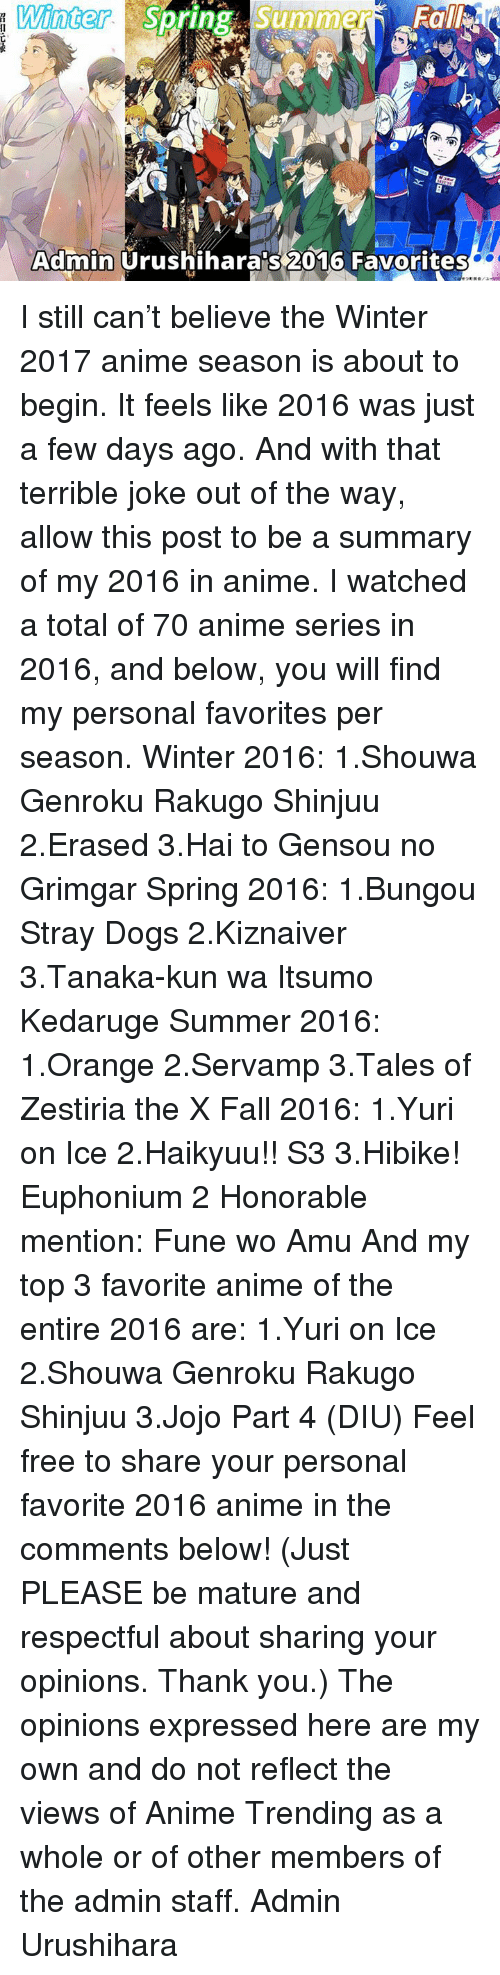 terrible jokes: Winter  Su  Summer  Spring Admin  Urushiharaps 2016 Favorites I still can't believe the Winter 2017 anime season is about to begin. It feels like 2016 was just a few days ago.  And with that terrible joke out of the way, allow this post to be a summary of my 2016 in anime. I watched a total of 70 anime series in 2016, and below, you will find my personal favorites per season.  Winter 2016: 1.Shouwa Genroku Rakugo Shinjuu 2.Erased 3.Hai to Gensou no Grimgar  Spring 2016: 1.Bungou Stray Dogs 2.Kiznaiver 3.Tanaka-kun wa Itsumo Kedaruge  Summer 2016: 1.Orange 2.Servamp 3.Tales of Zestiria the X  Fall 2016: 1.Yuri on Ice 2.Haikyuu!! S3 3.Hibike! Euphonium 2 Honorable mention: Fune wo Amu  And my top 3 favorite anime of the entire 2016 are: 1.Yuri on Ice 2.Shouwa Genroku Rakugo Shinjuu 3.Jojo Part 4 (DIU)  Feel free to share your personal favorite 2016 anime in the comments below! (Just PLEASE be mature and respectful about sharing your opinions. Thank you.)  The opinions expressed here are my own and do not reflect the views of Anime Trending as a whole or of other members of the admin staff.  Admin Urushihara